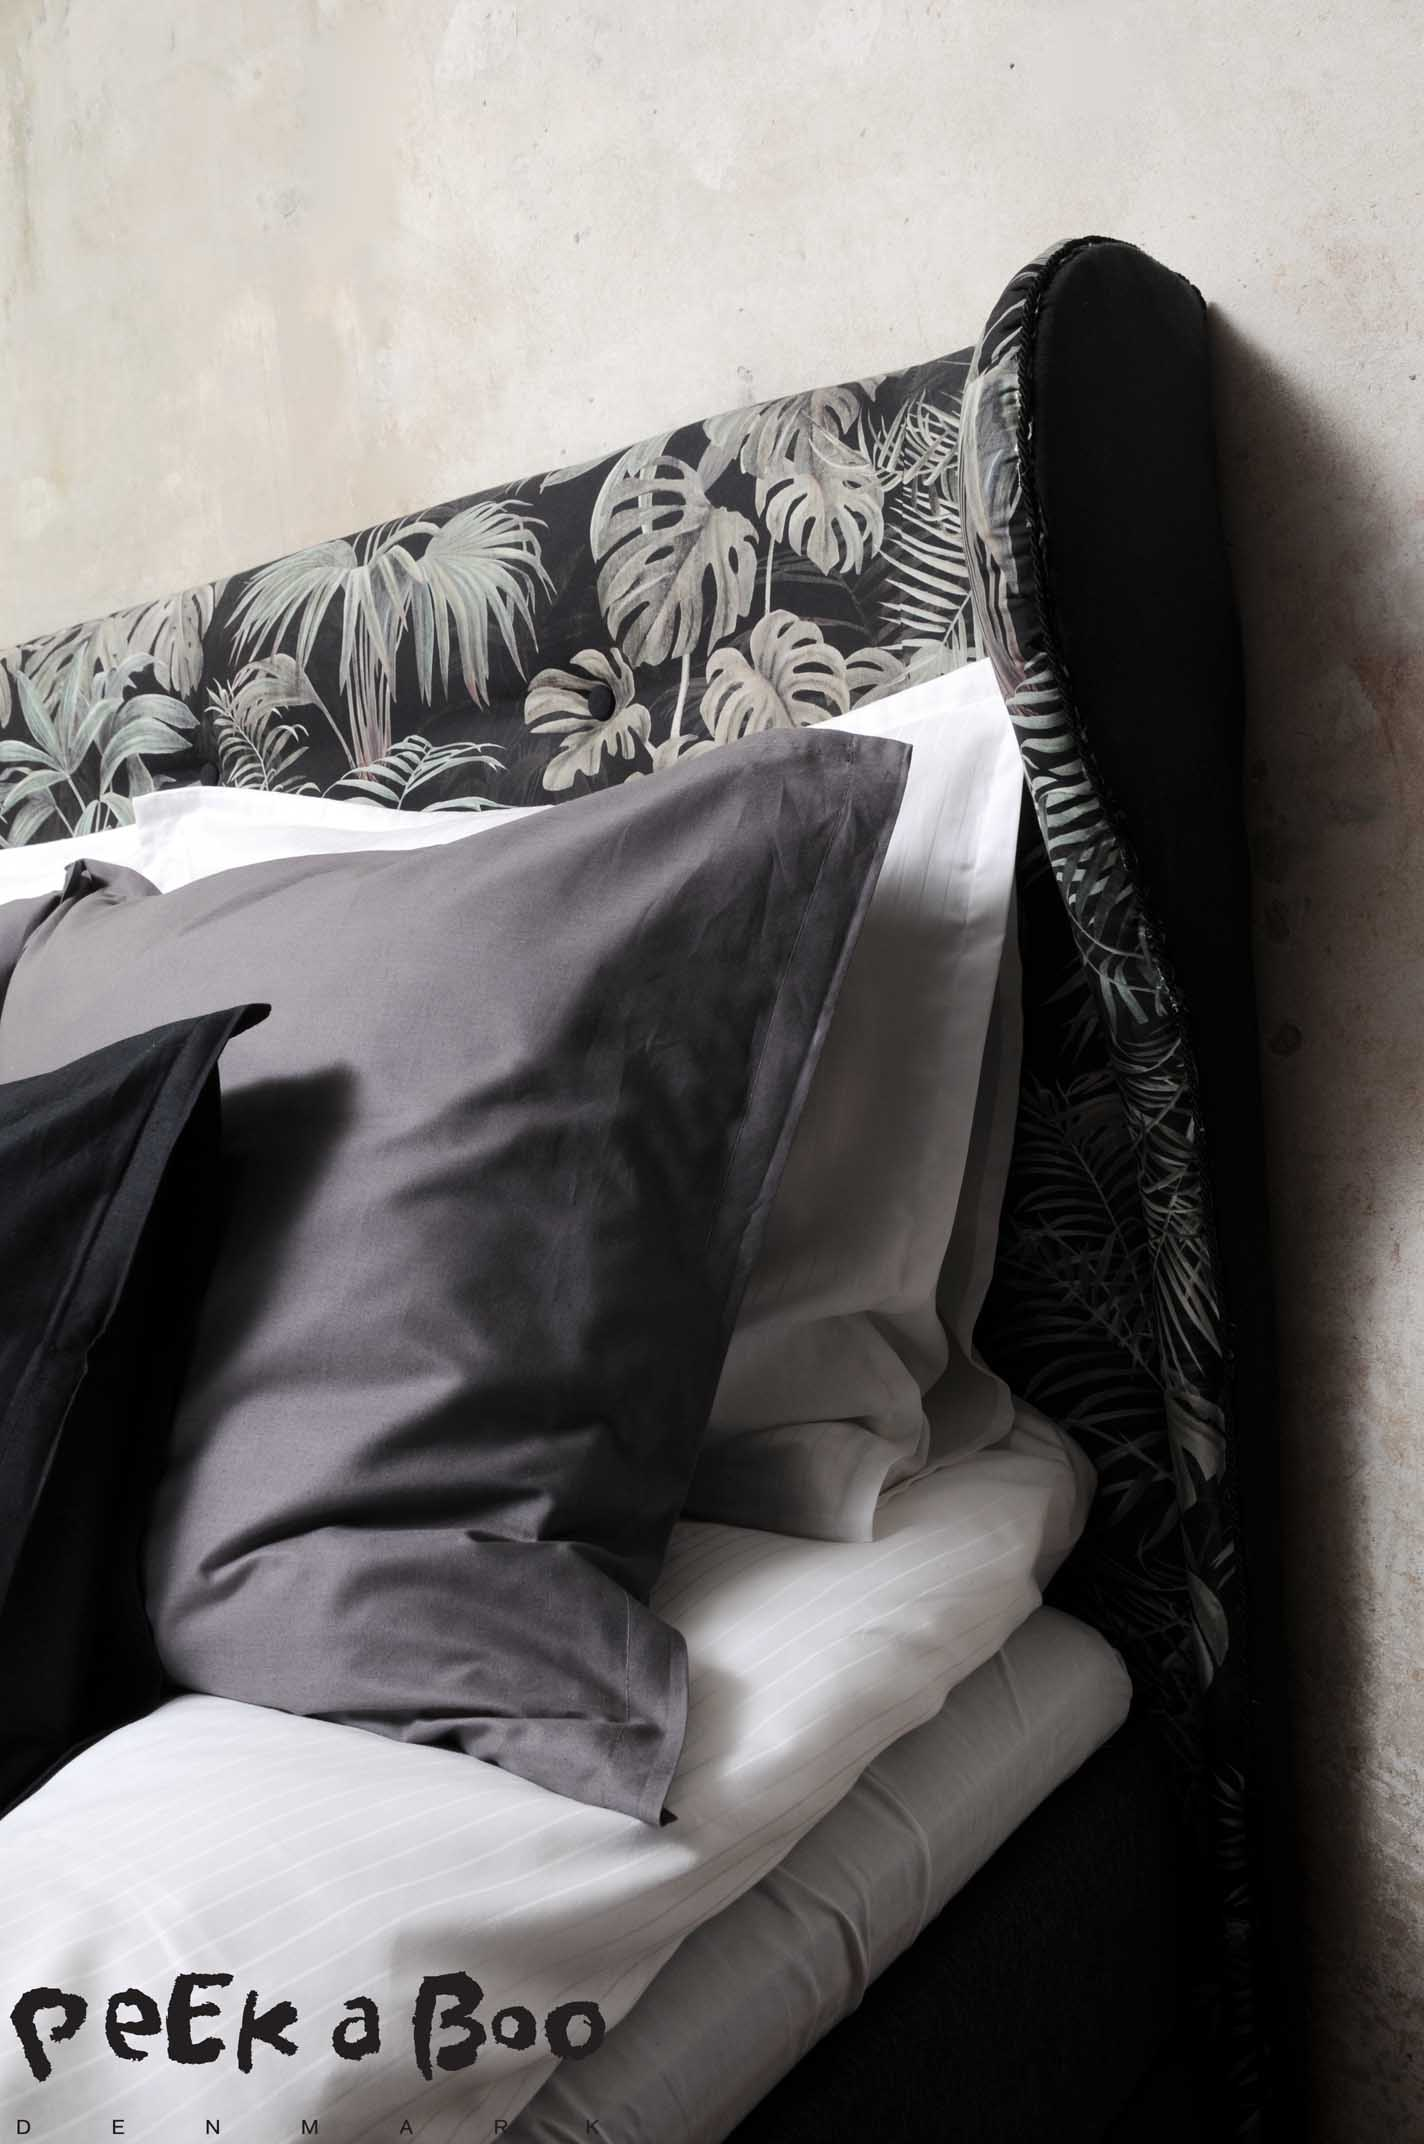 All bedlinen aer from JYSK and held in the colours white, grey and black.